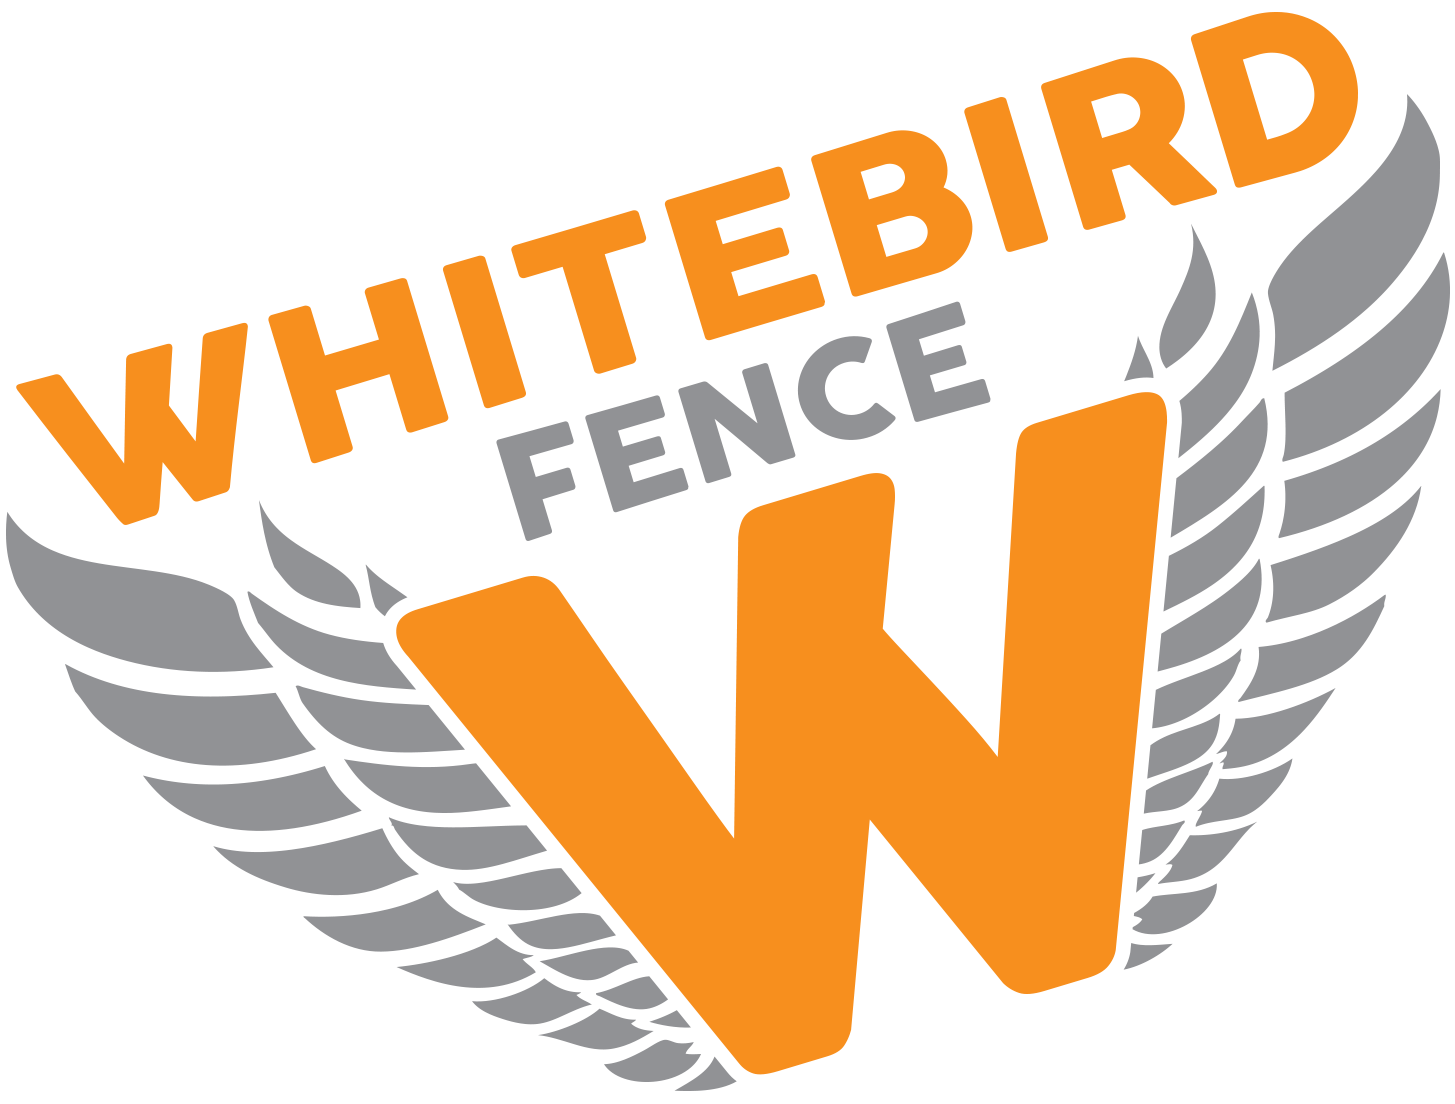 Whitebird Fence